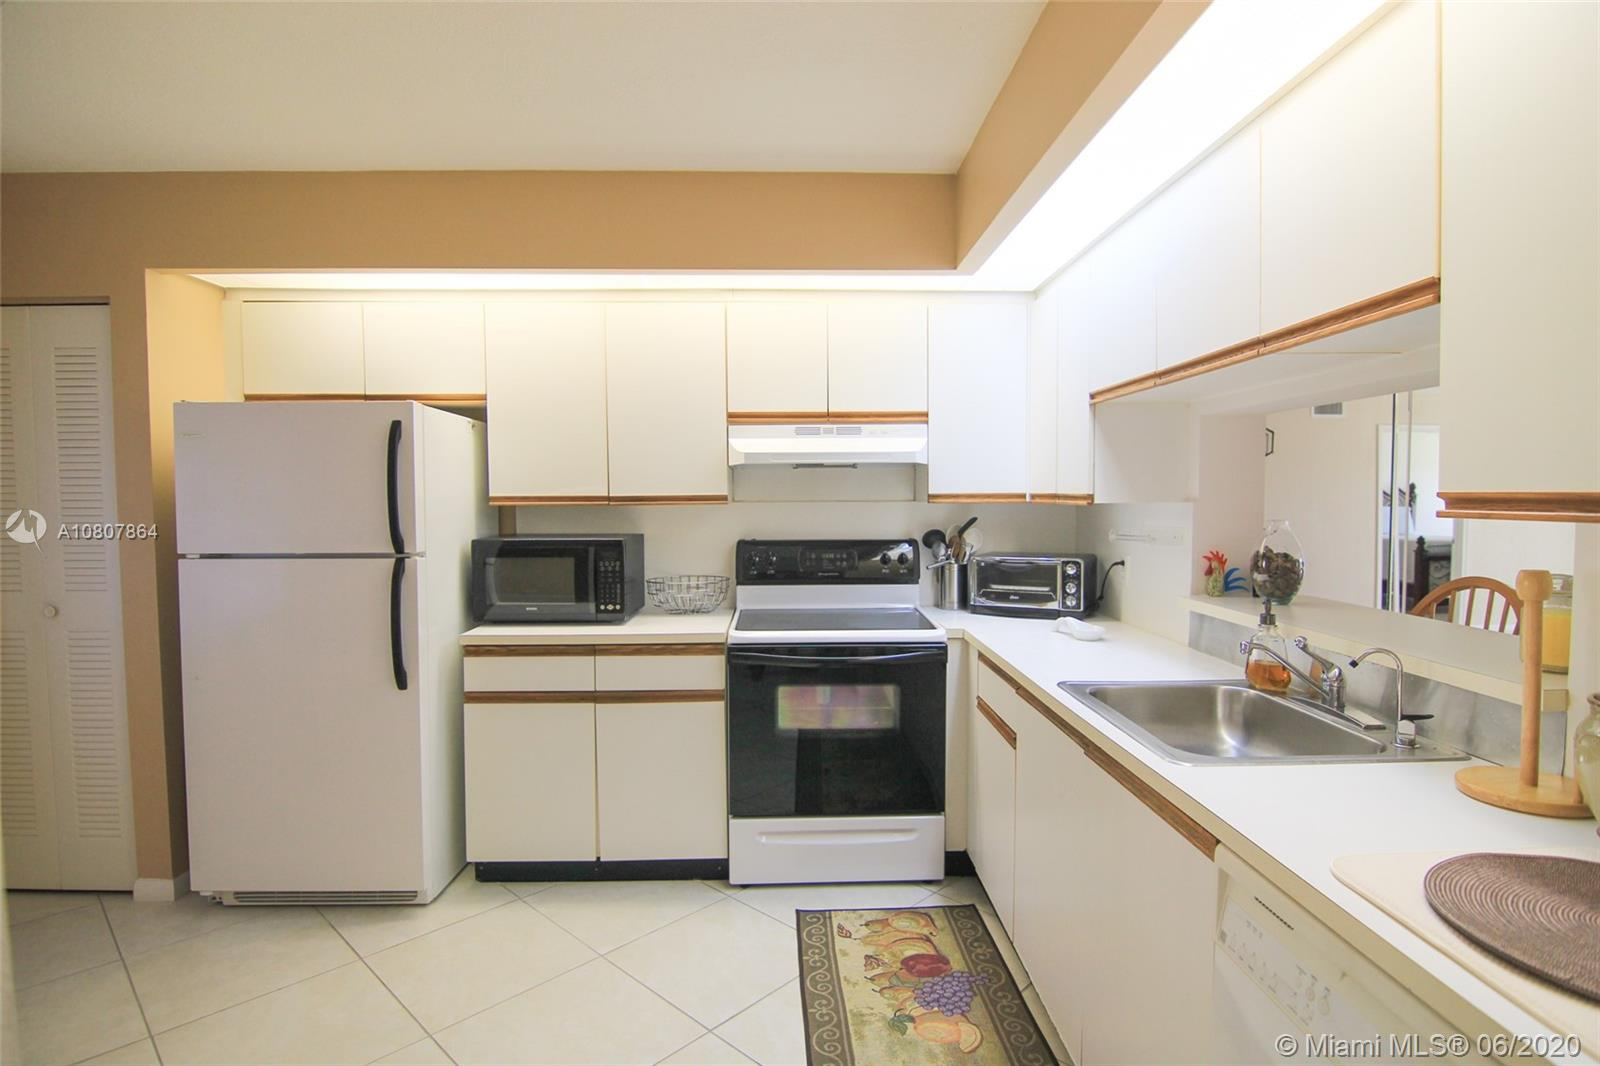 Located on the 1st floor with an amazing view of the lake, very close to the parking space. Model J. Unfurnished 2 bedroom 2 bathroom condo with washer and dryer, kitchen, oven, refrigerator, dishwasher. Large kitchen with pantry and space for an eat-in kitchen. The master bedroom has a large walk-in closet. Excellent baths. Screened balcony. Impact windows Cat 5 and sliding door on the porch. 